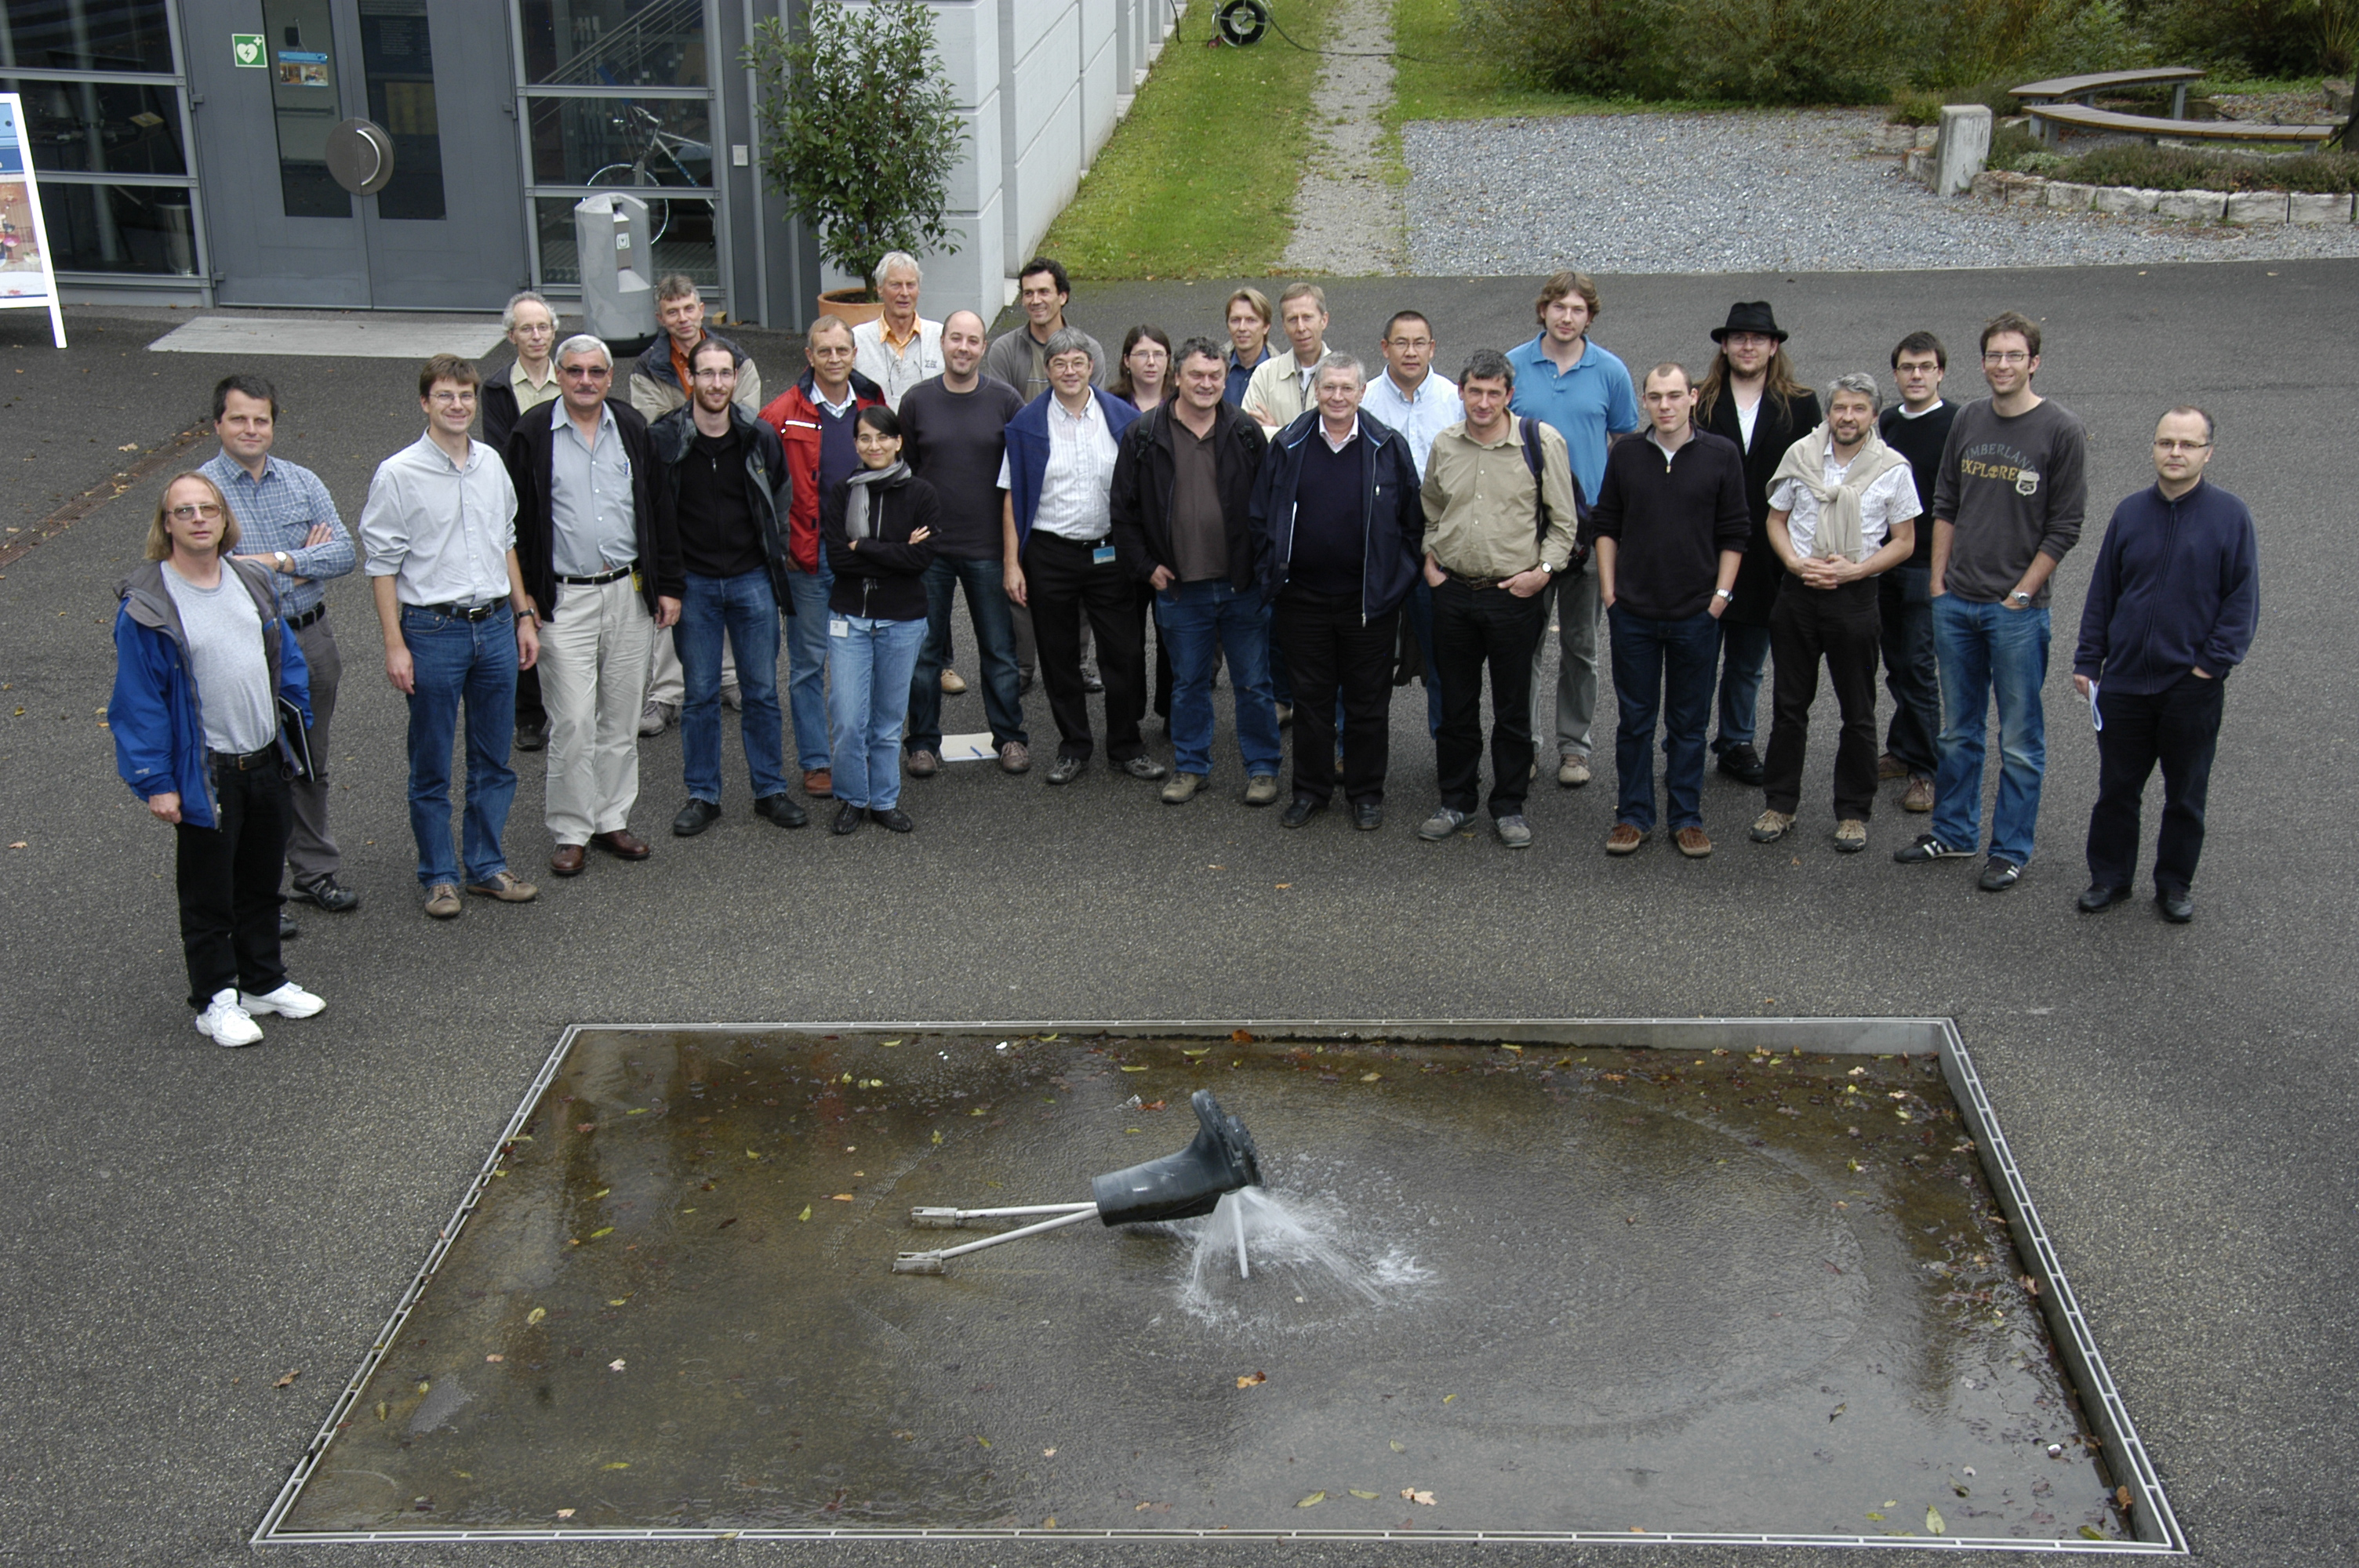 Picture taken at our collaboration meeting at PSI, 9. October 2009